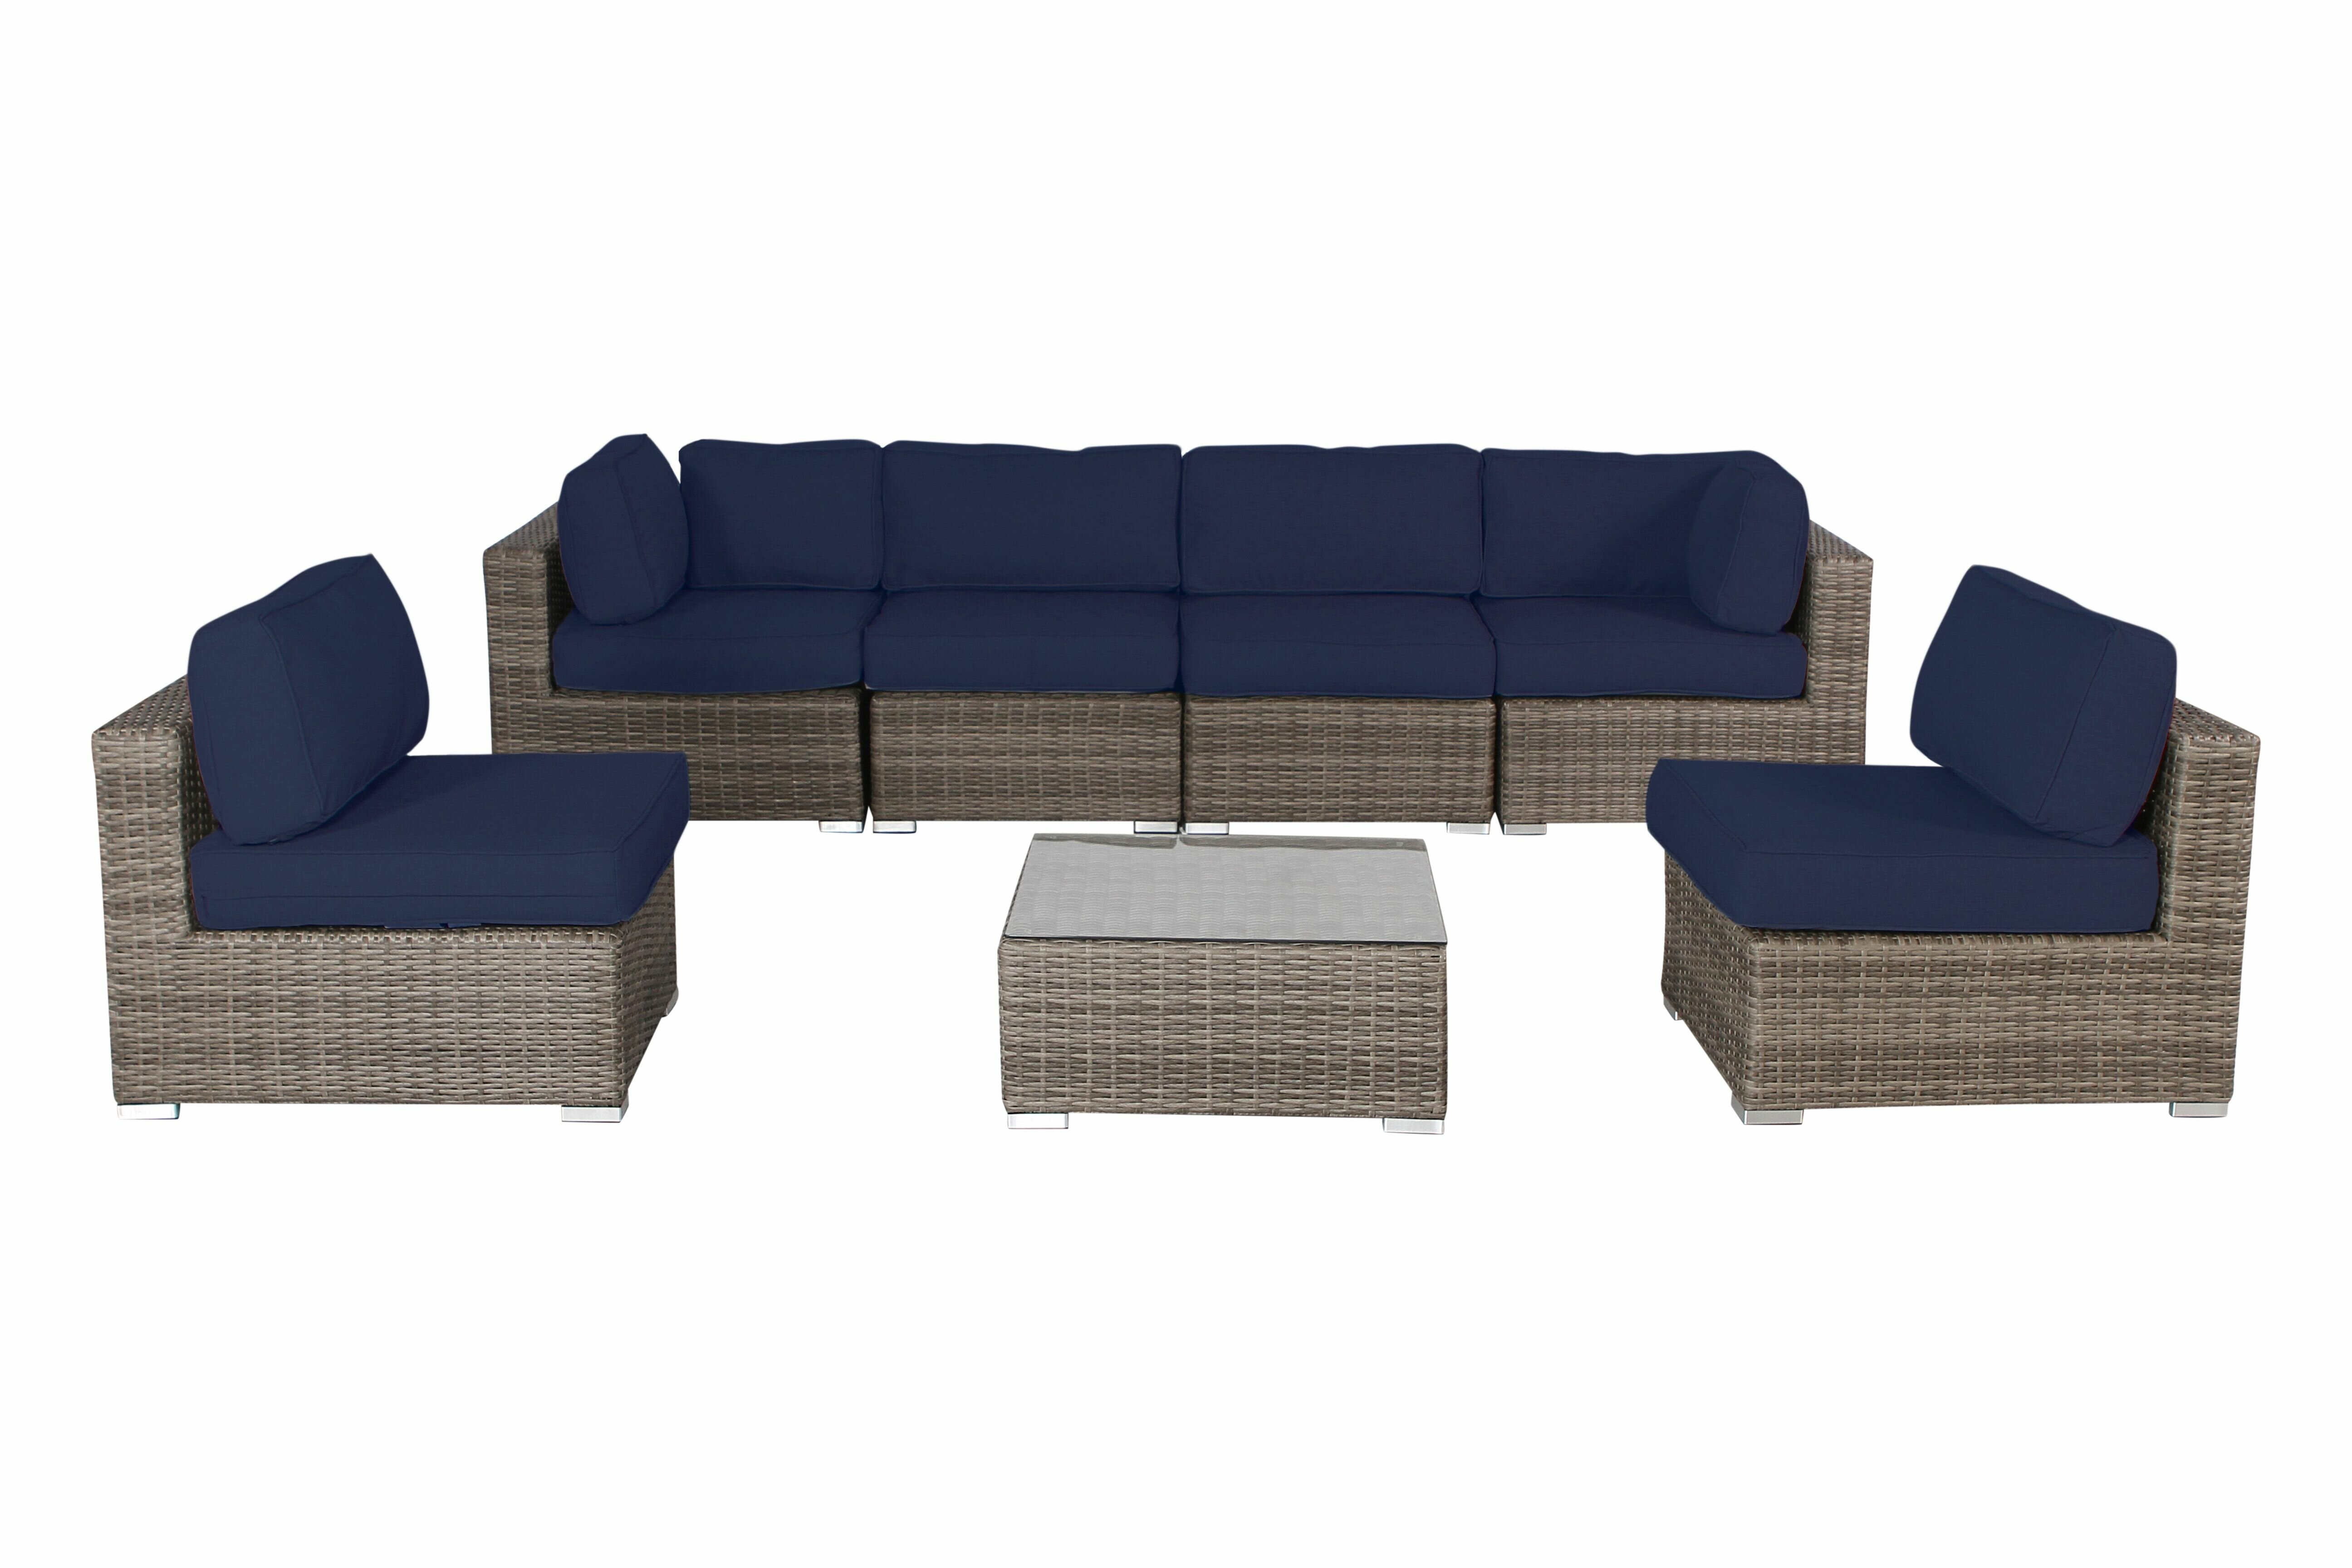 Outstanding Deandra 7 Piece Rattan Sectional Set With Cushions Machost Co Dining Chair Design Ideas Machostcouk